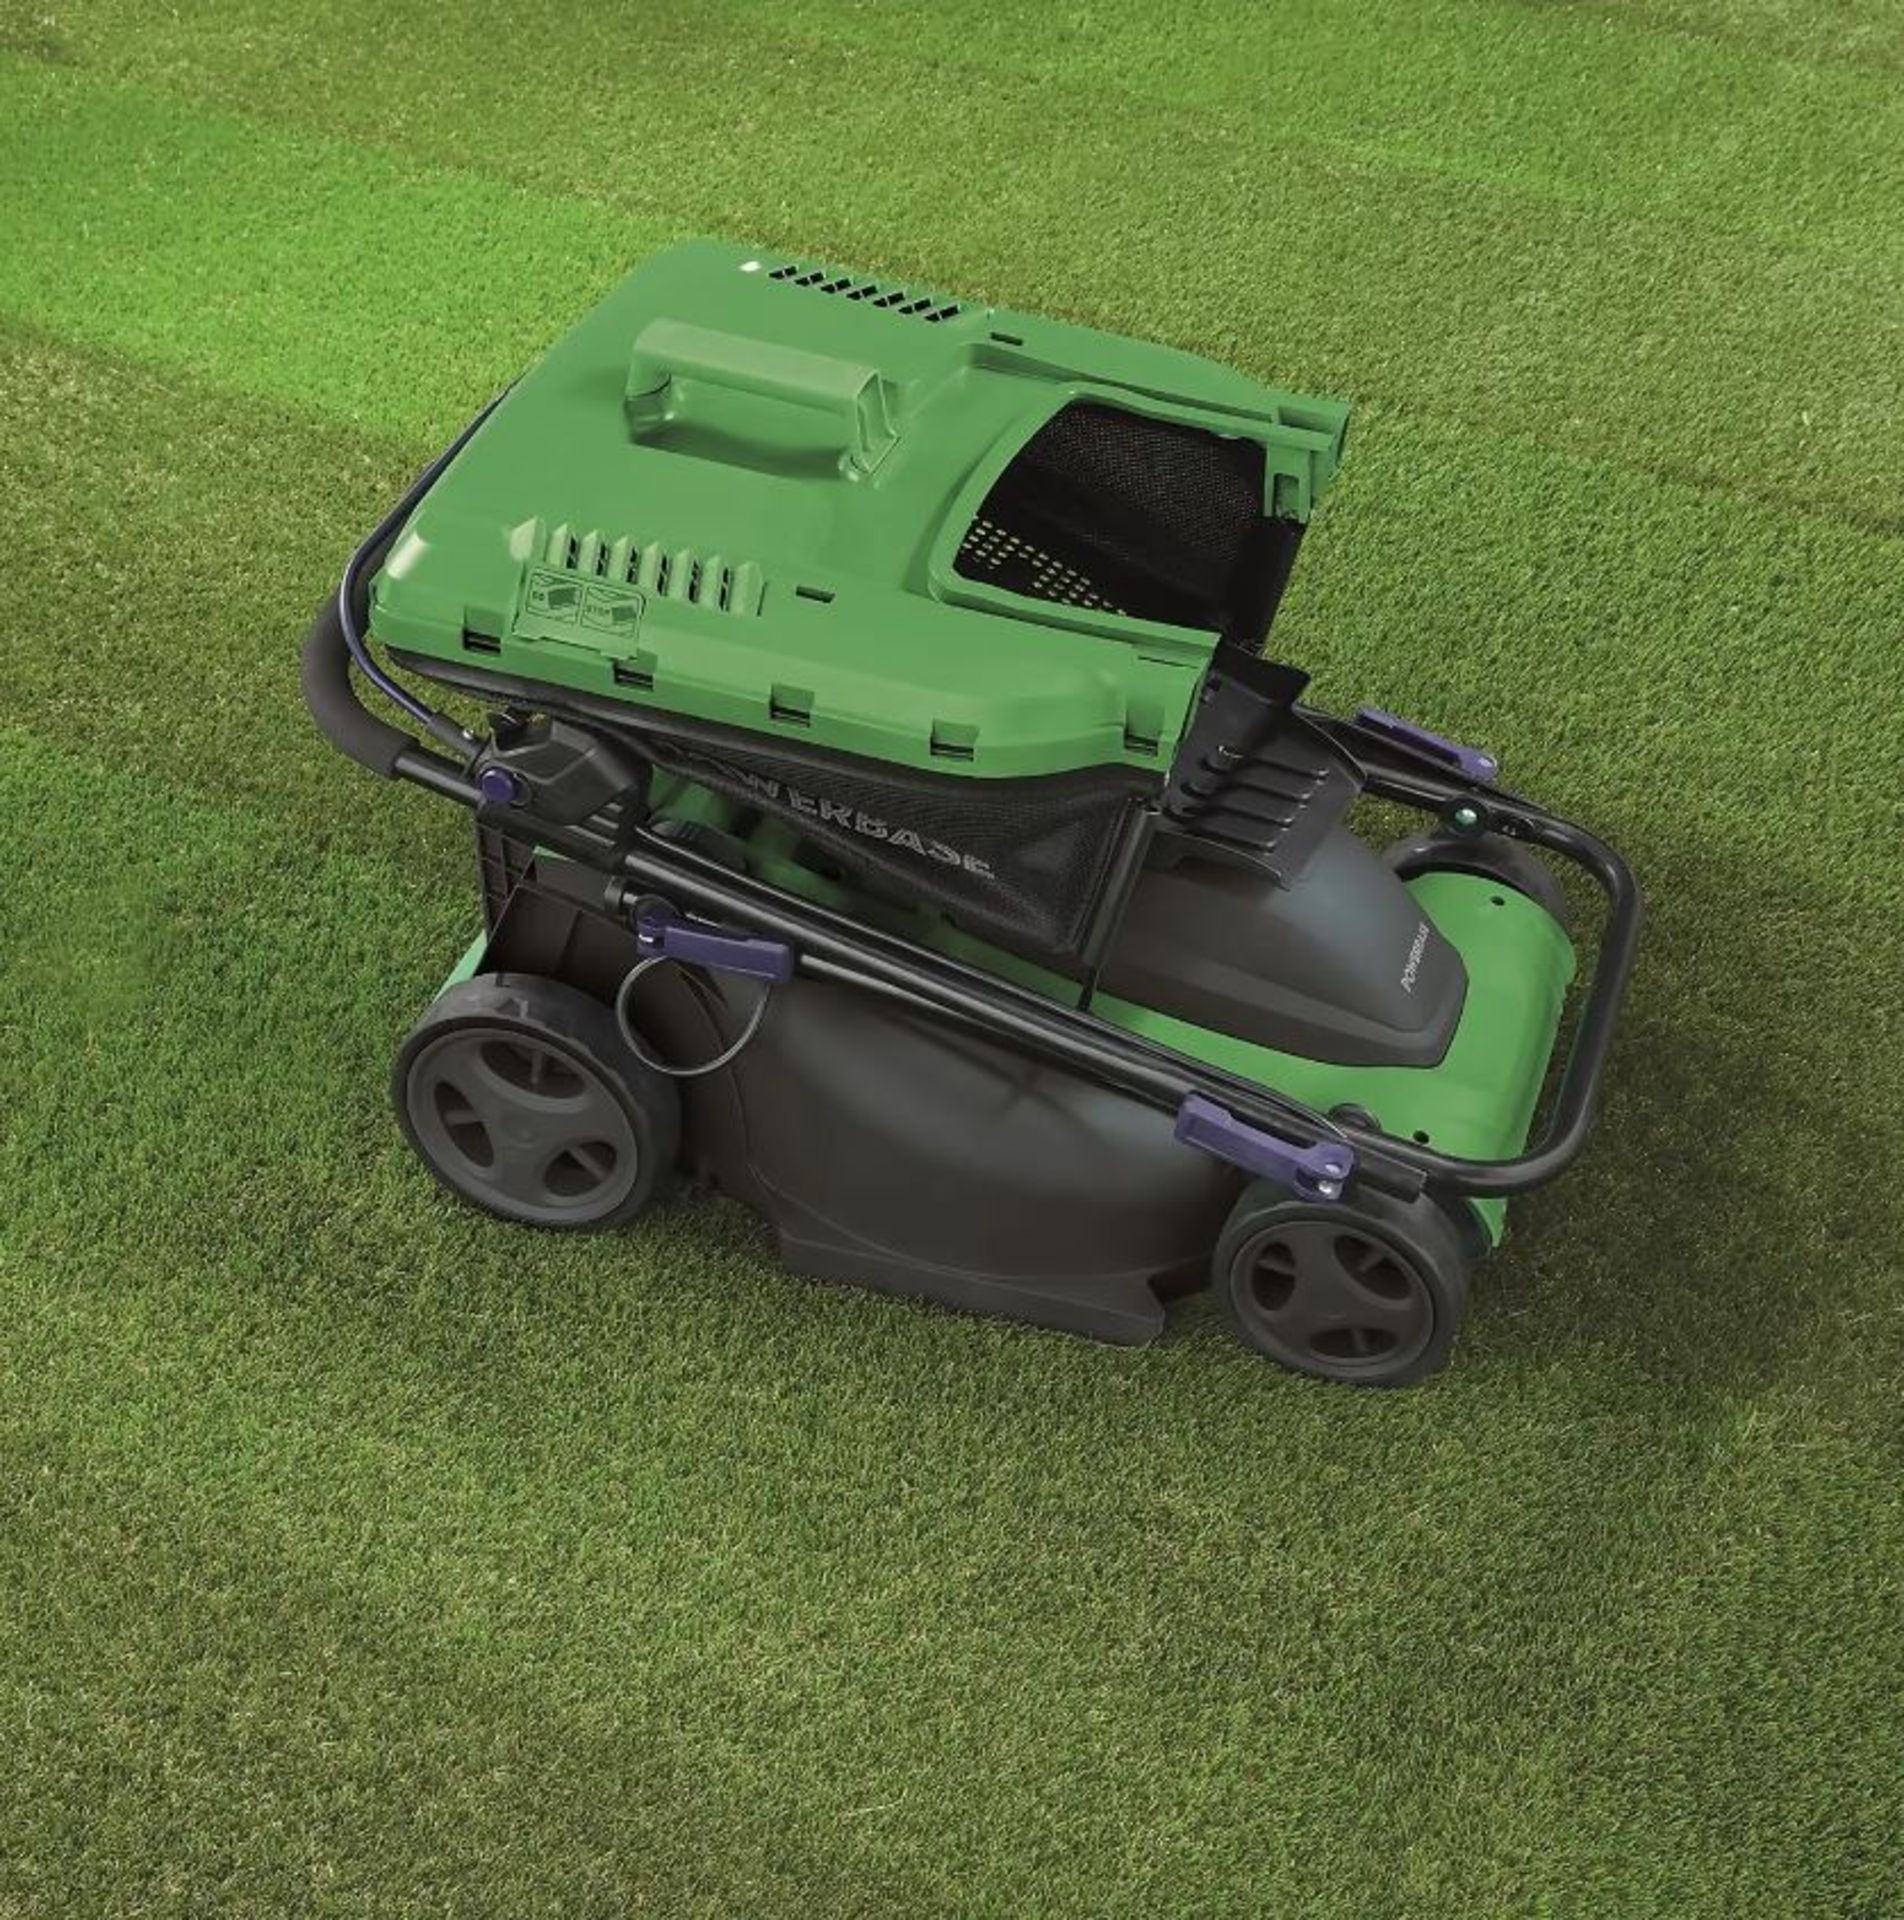 (P7) 2x Powerbase 37cm 1600W Electric Rotary Lawn Mower RRP £99 Each. - Image 2 of 3